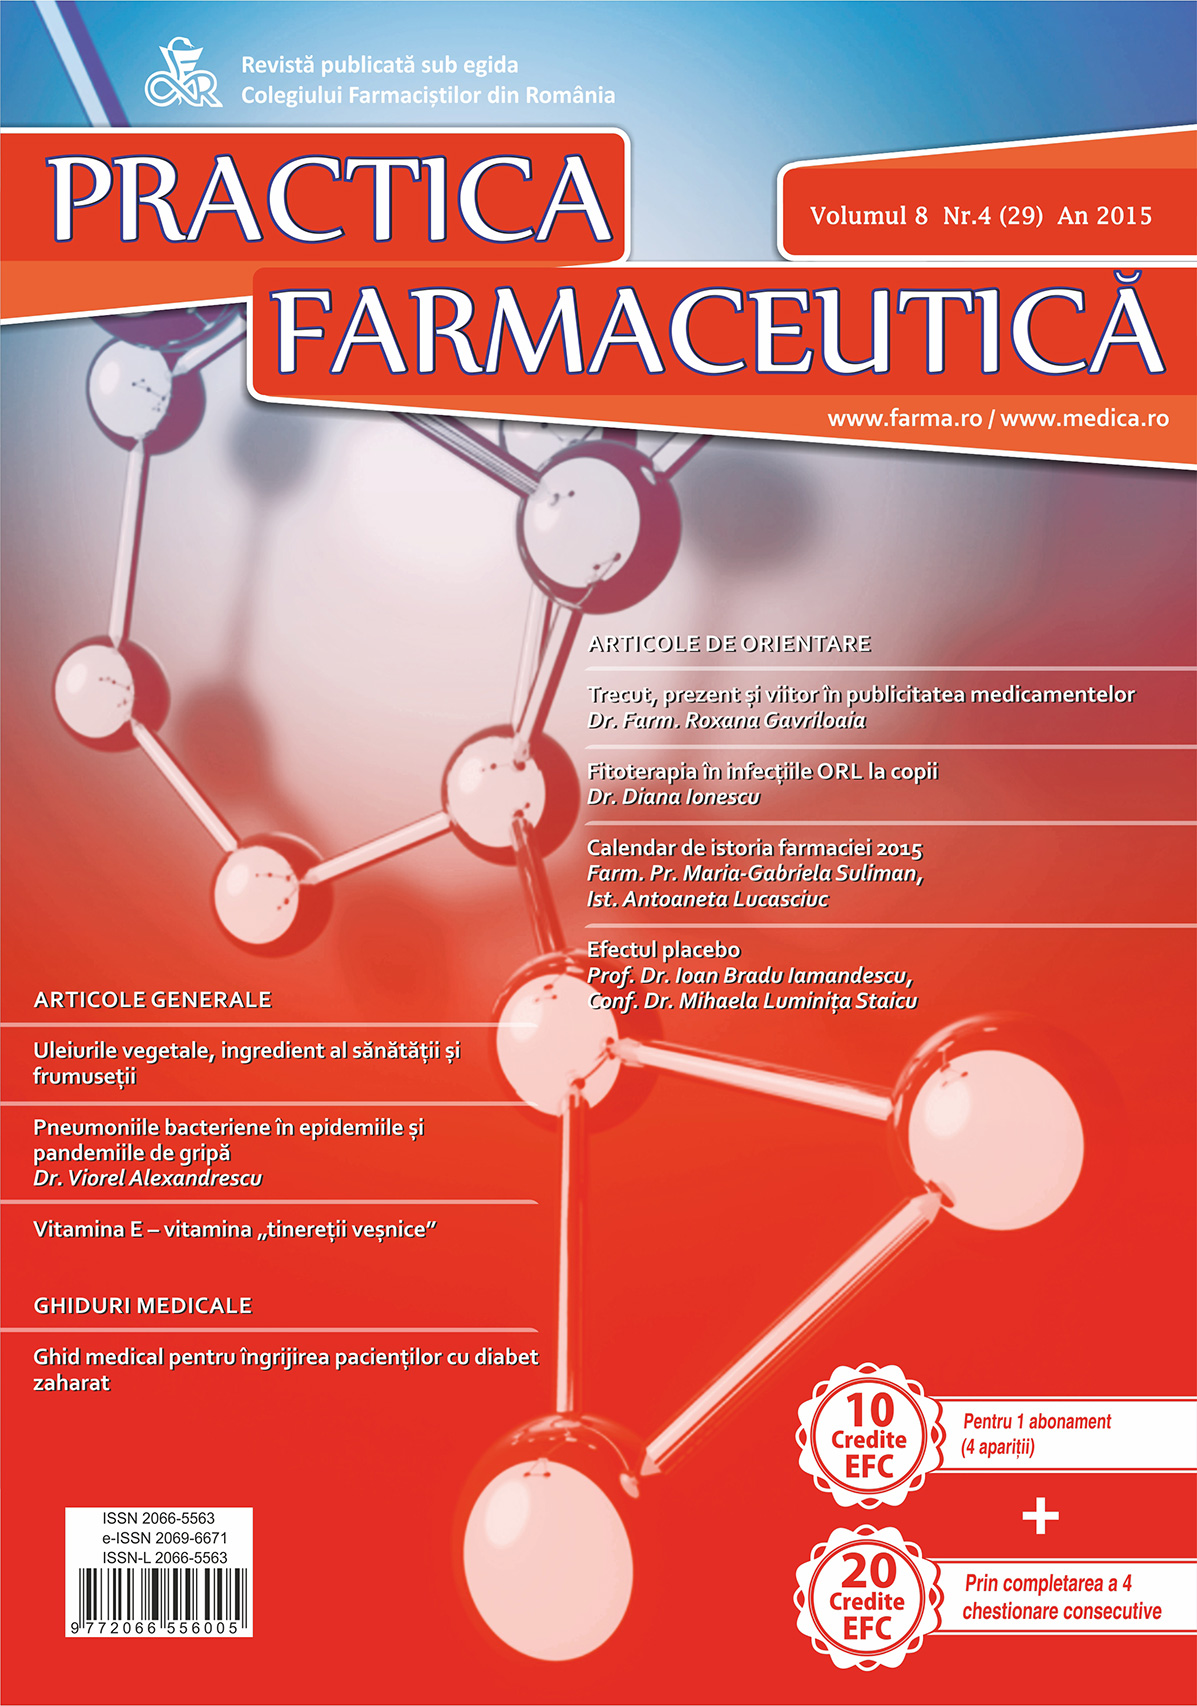 Revista Practica Farmaceutica, Vol. 8, Nr. 4 (29), 2015